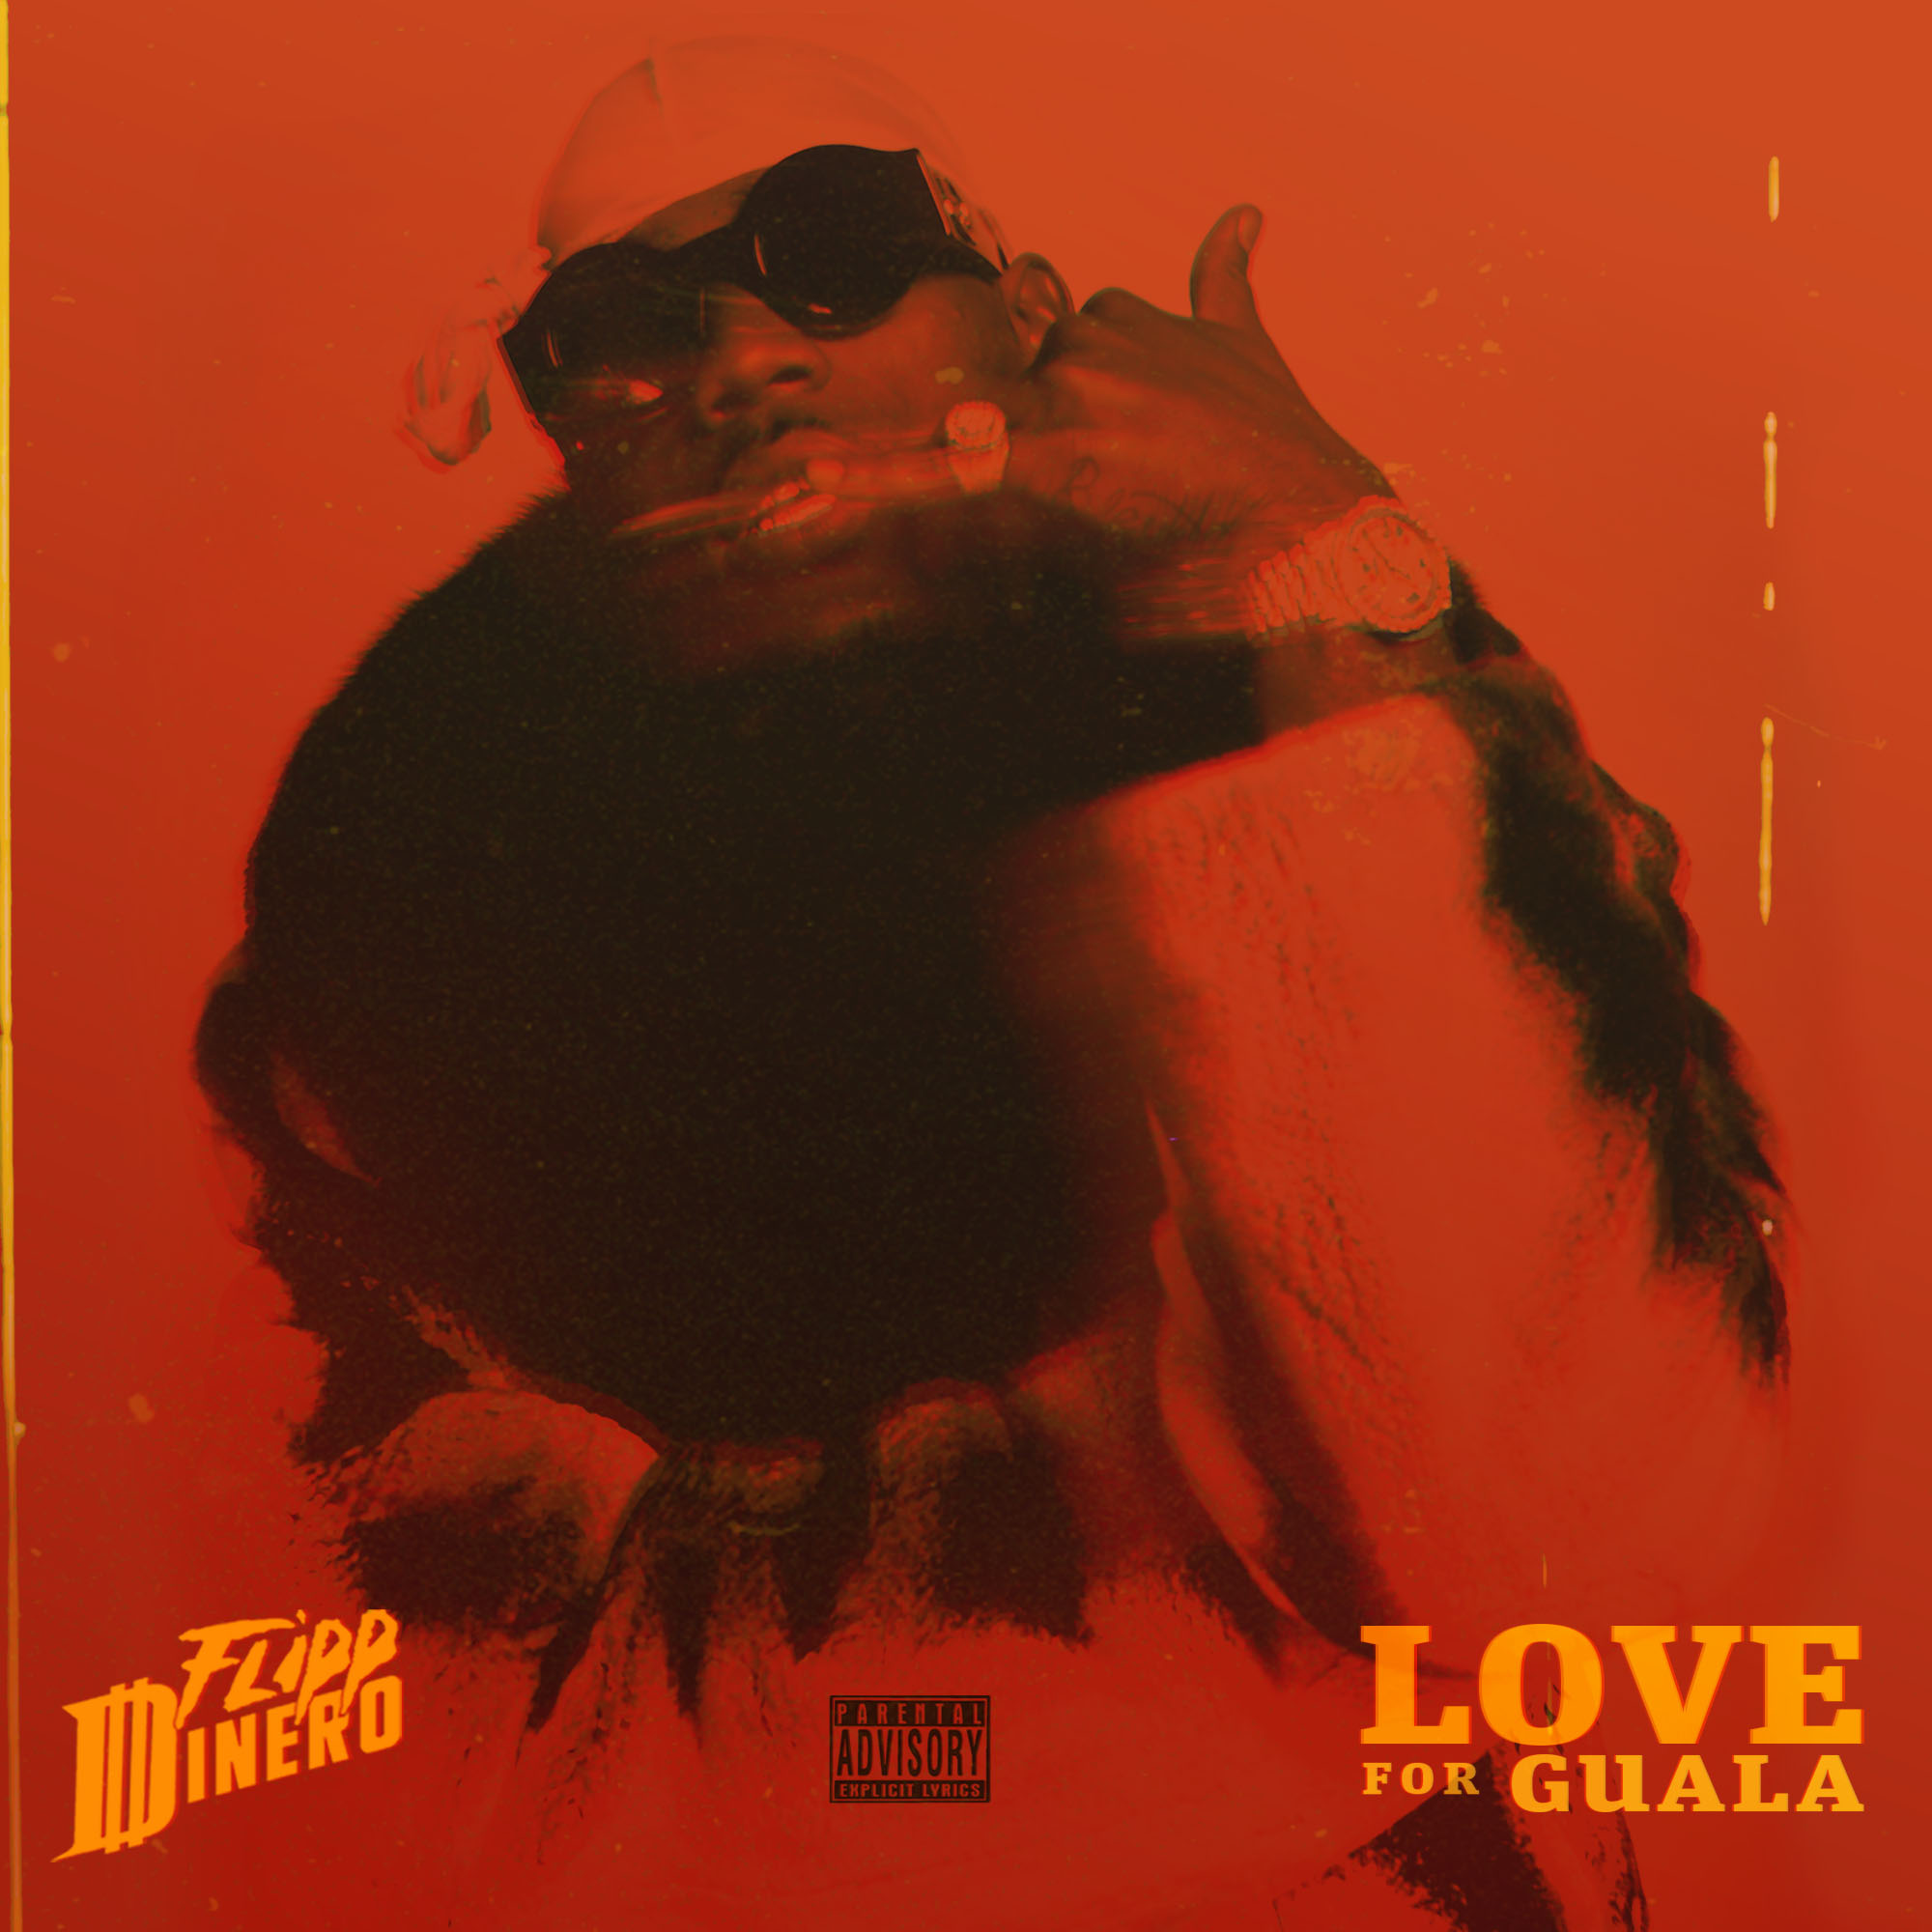 FLIPP DINERO RELEASES DEBUT PROJECT LOVE FOR GUALA TODAY